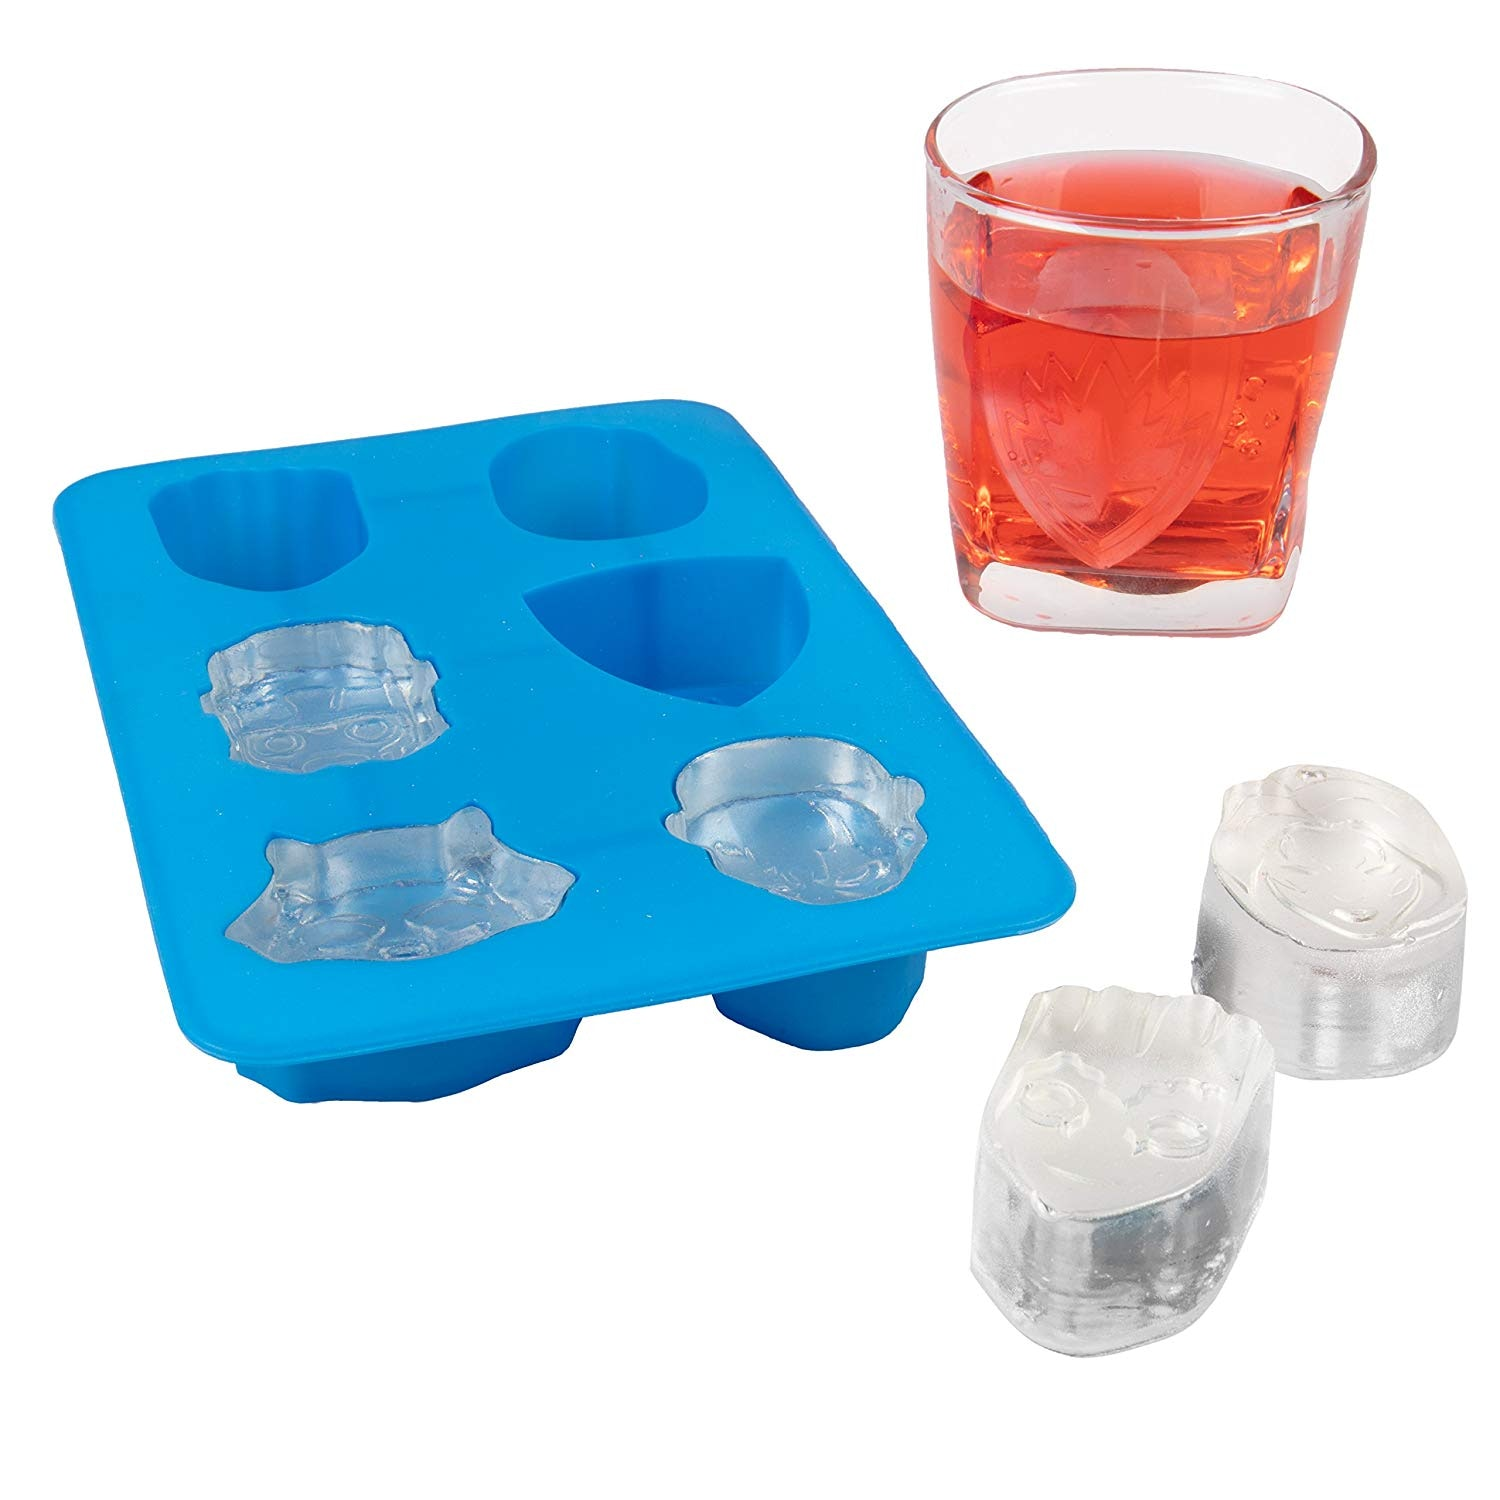 Guardians of the Galaxy Silicone Ice Cube Tray